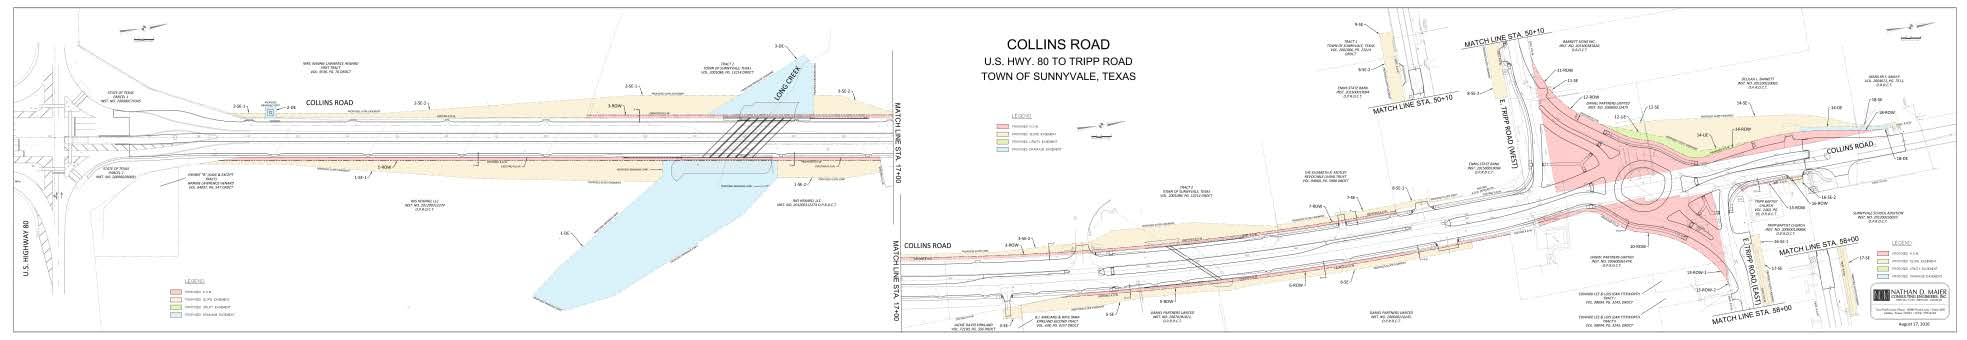 collins expansion